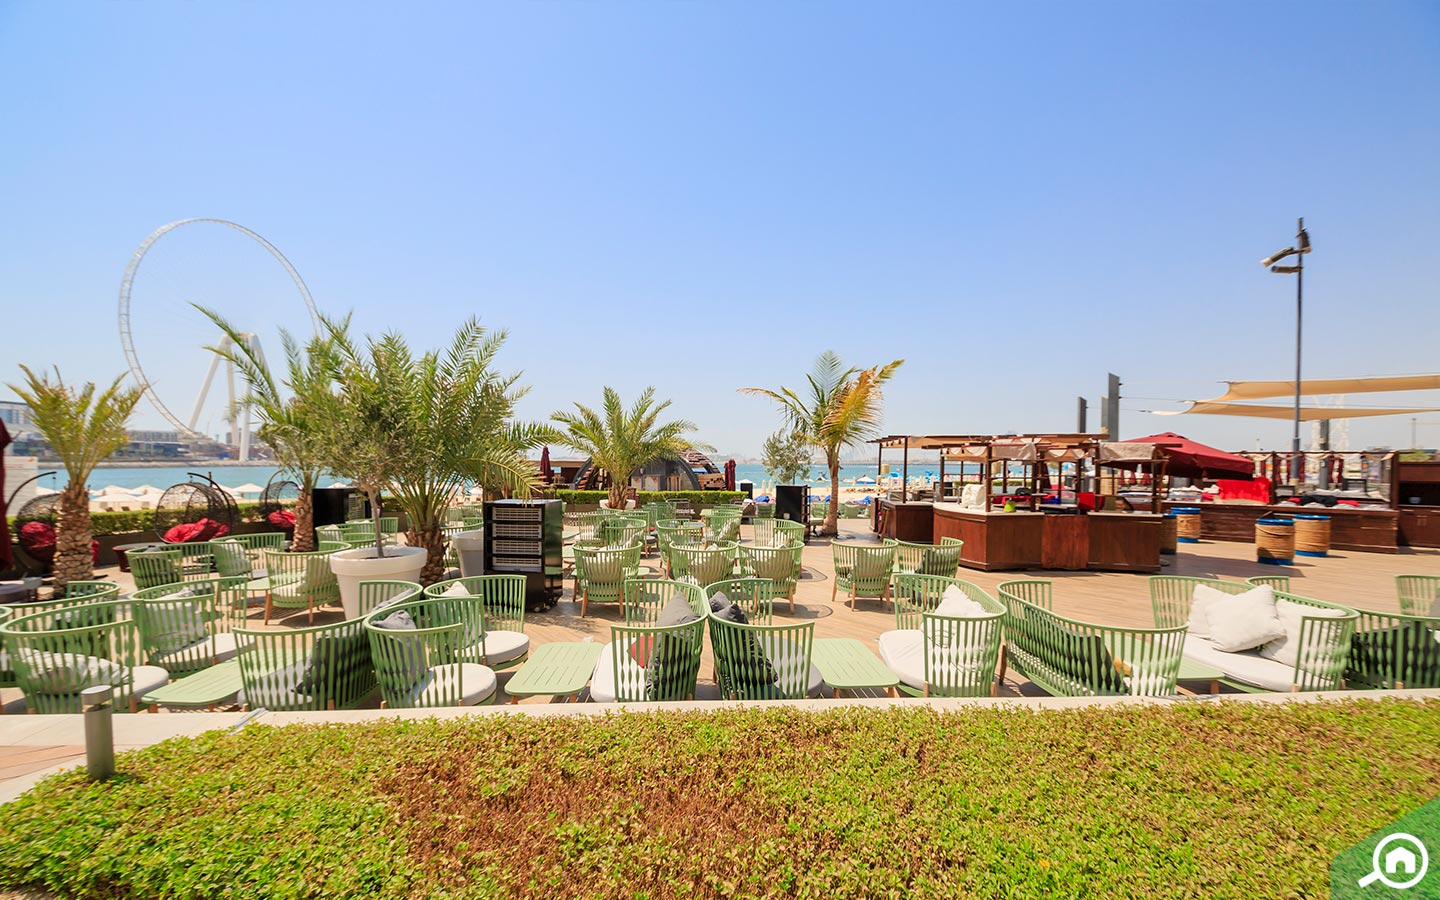 Outside seating view of a restaurant on the JBR beach